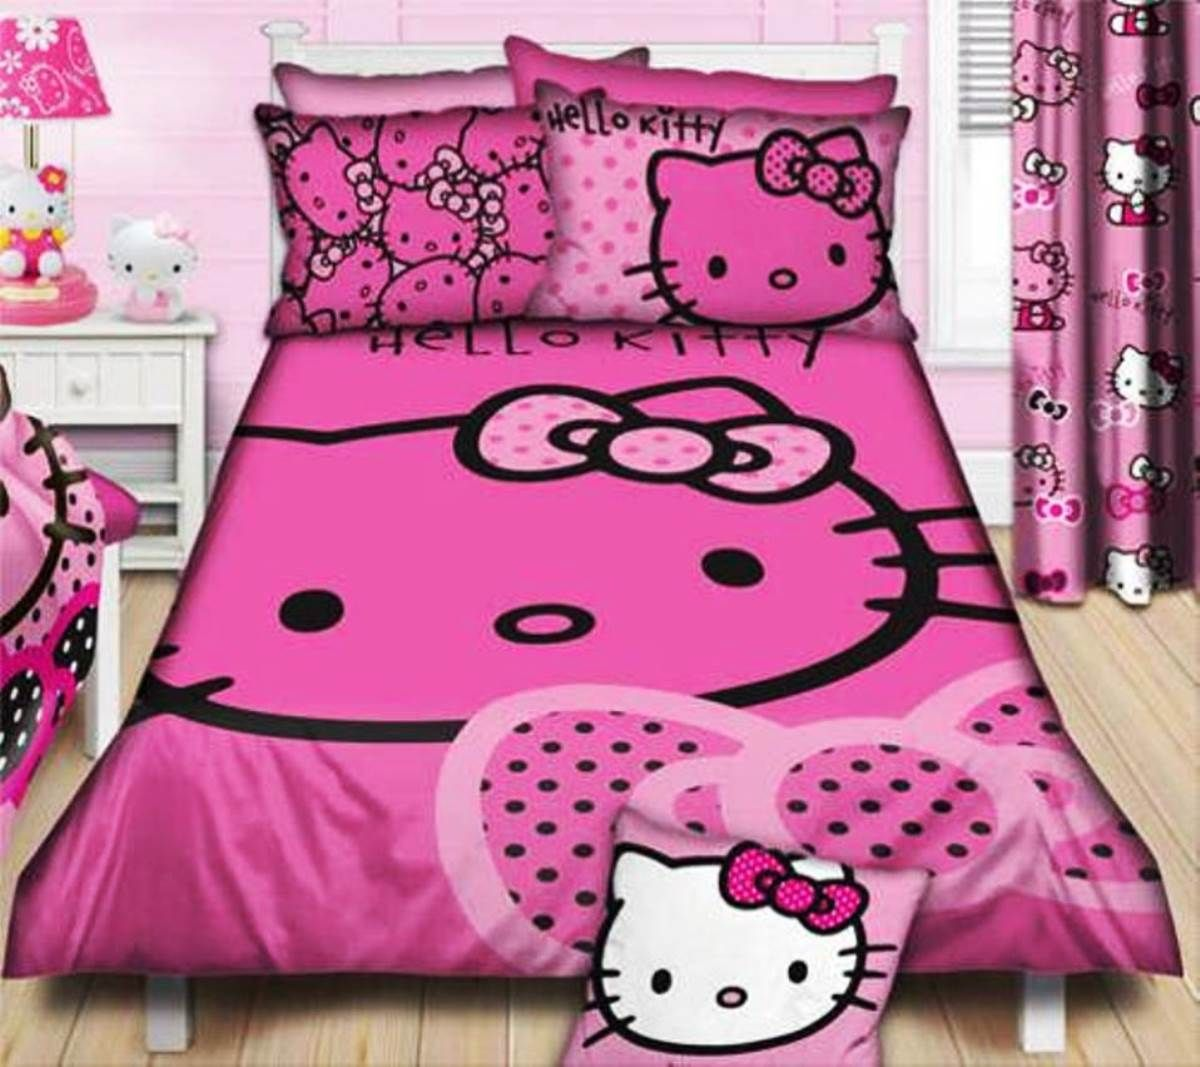 1000 Images About Hello Kitty Items On Pinterest Hello Kitty